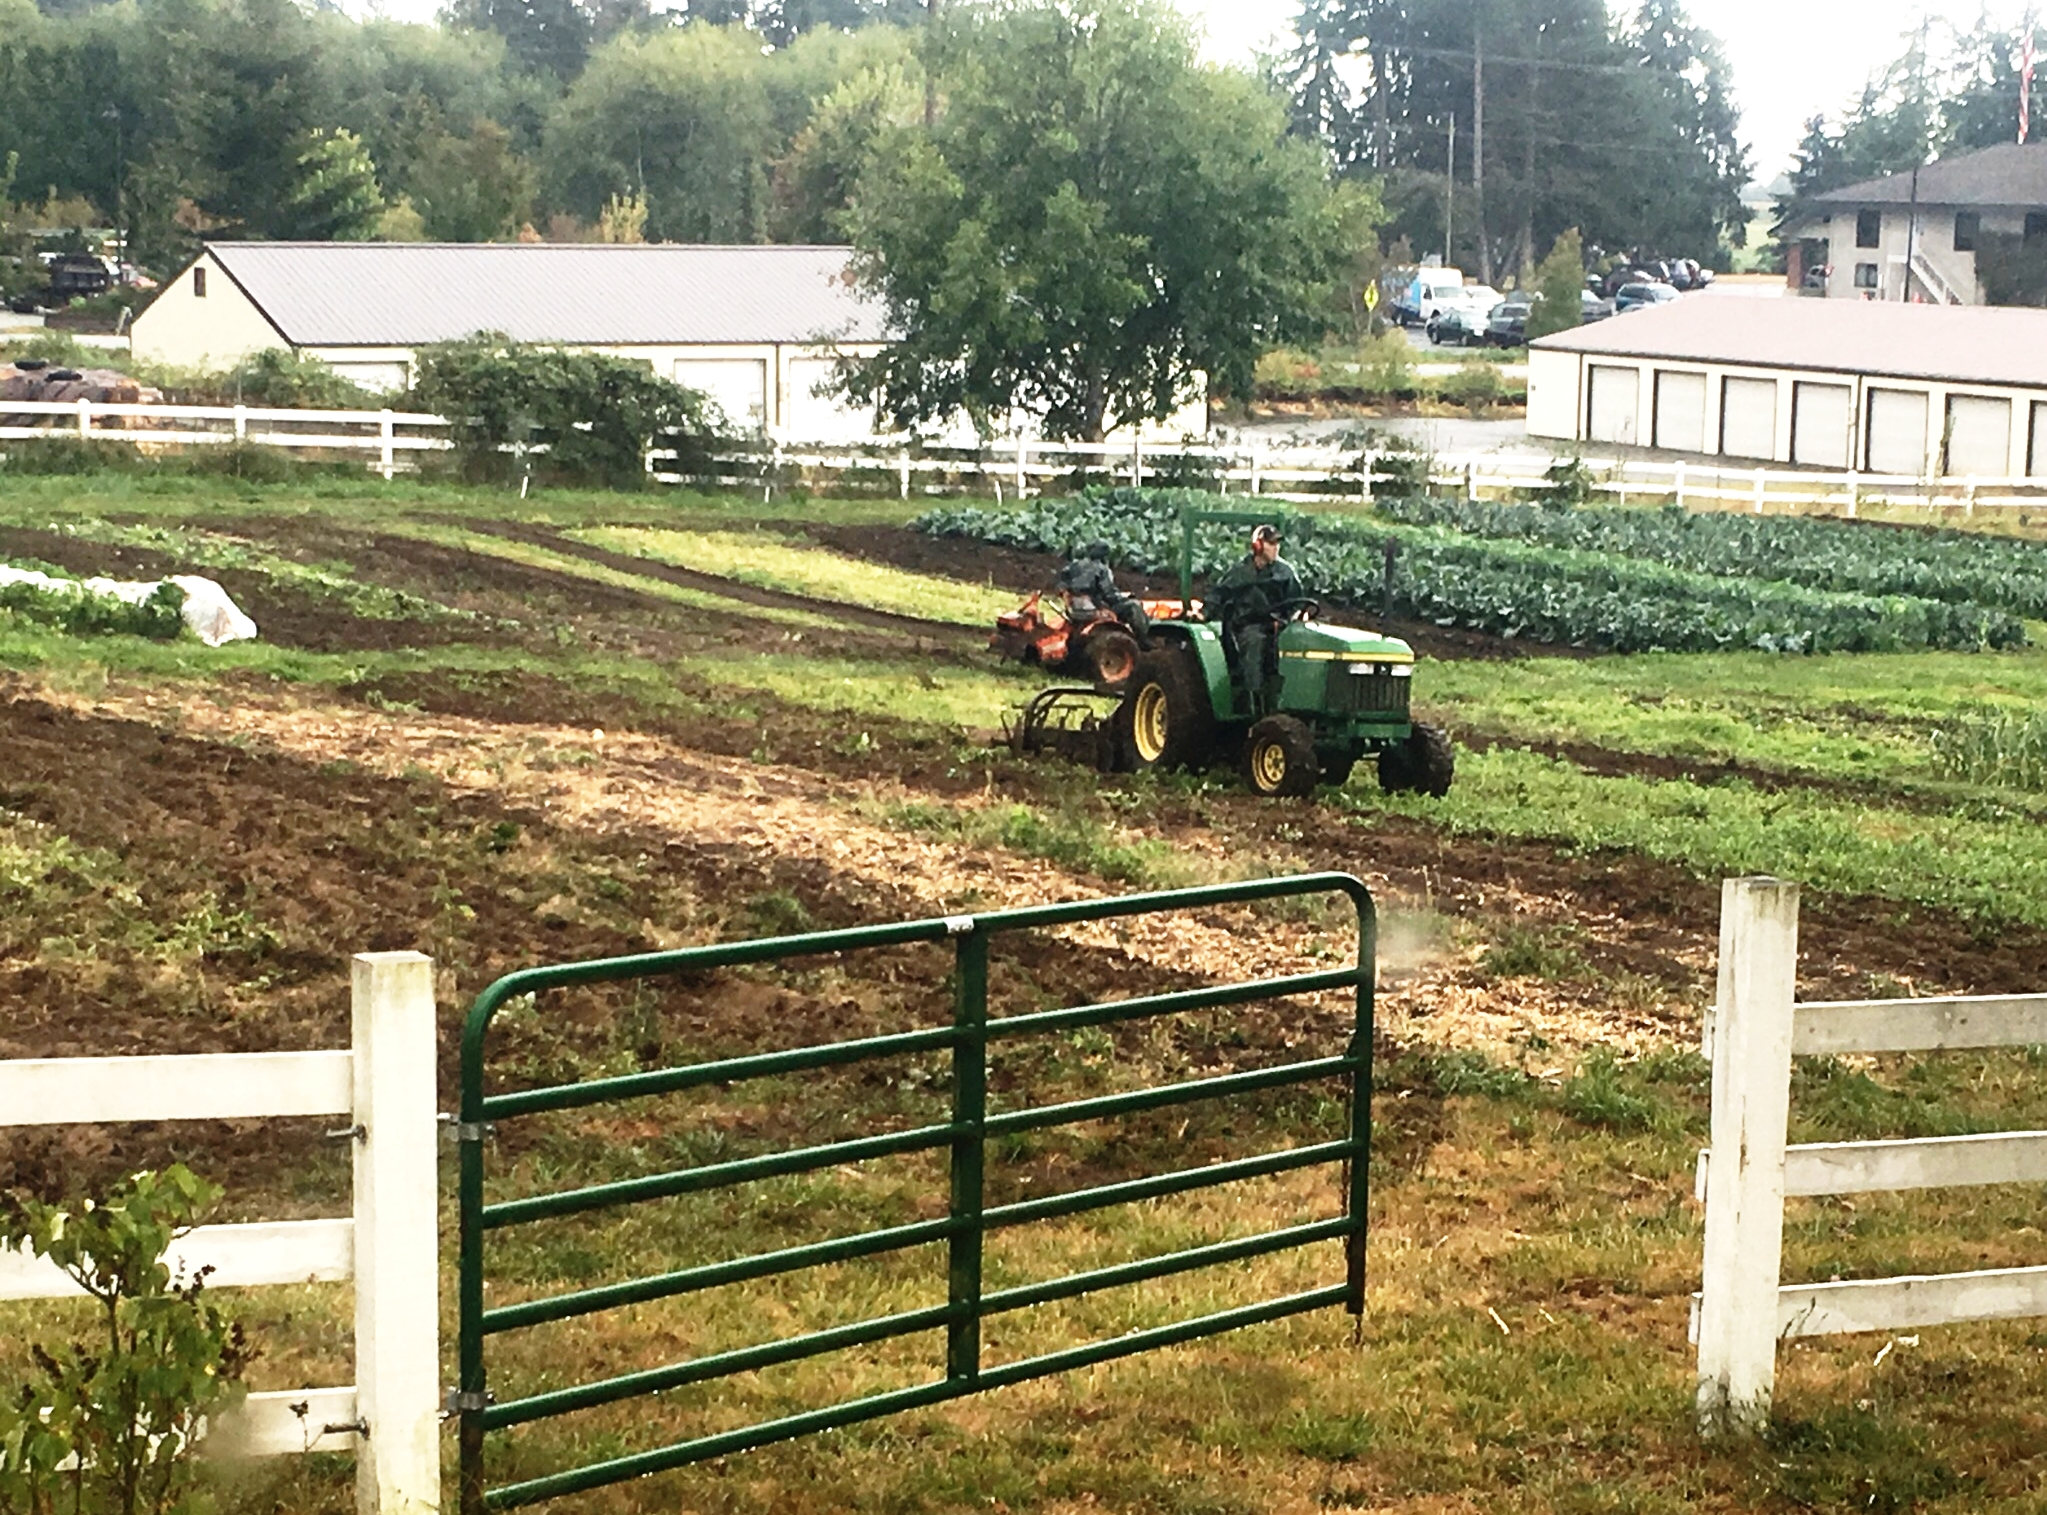 Ebb Tide Produce plowing the field.